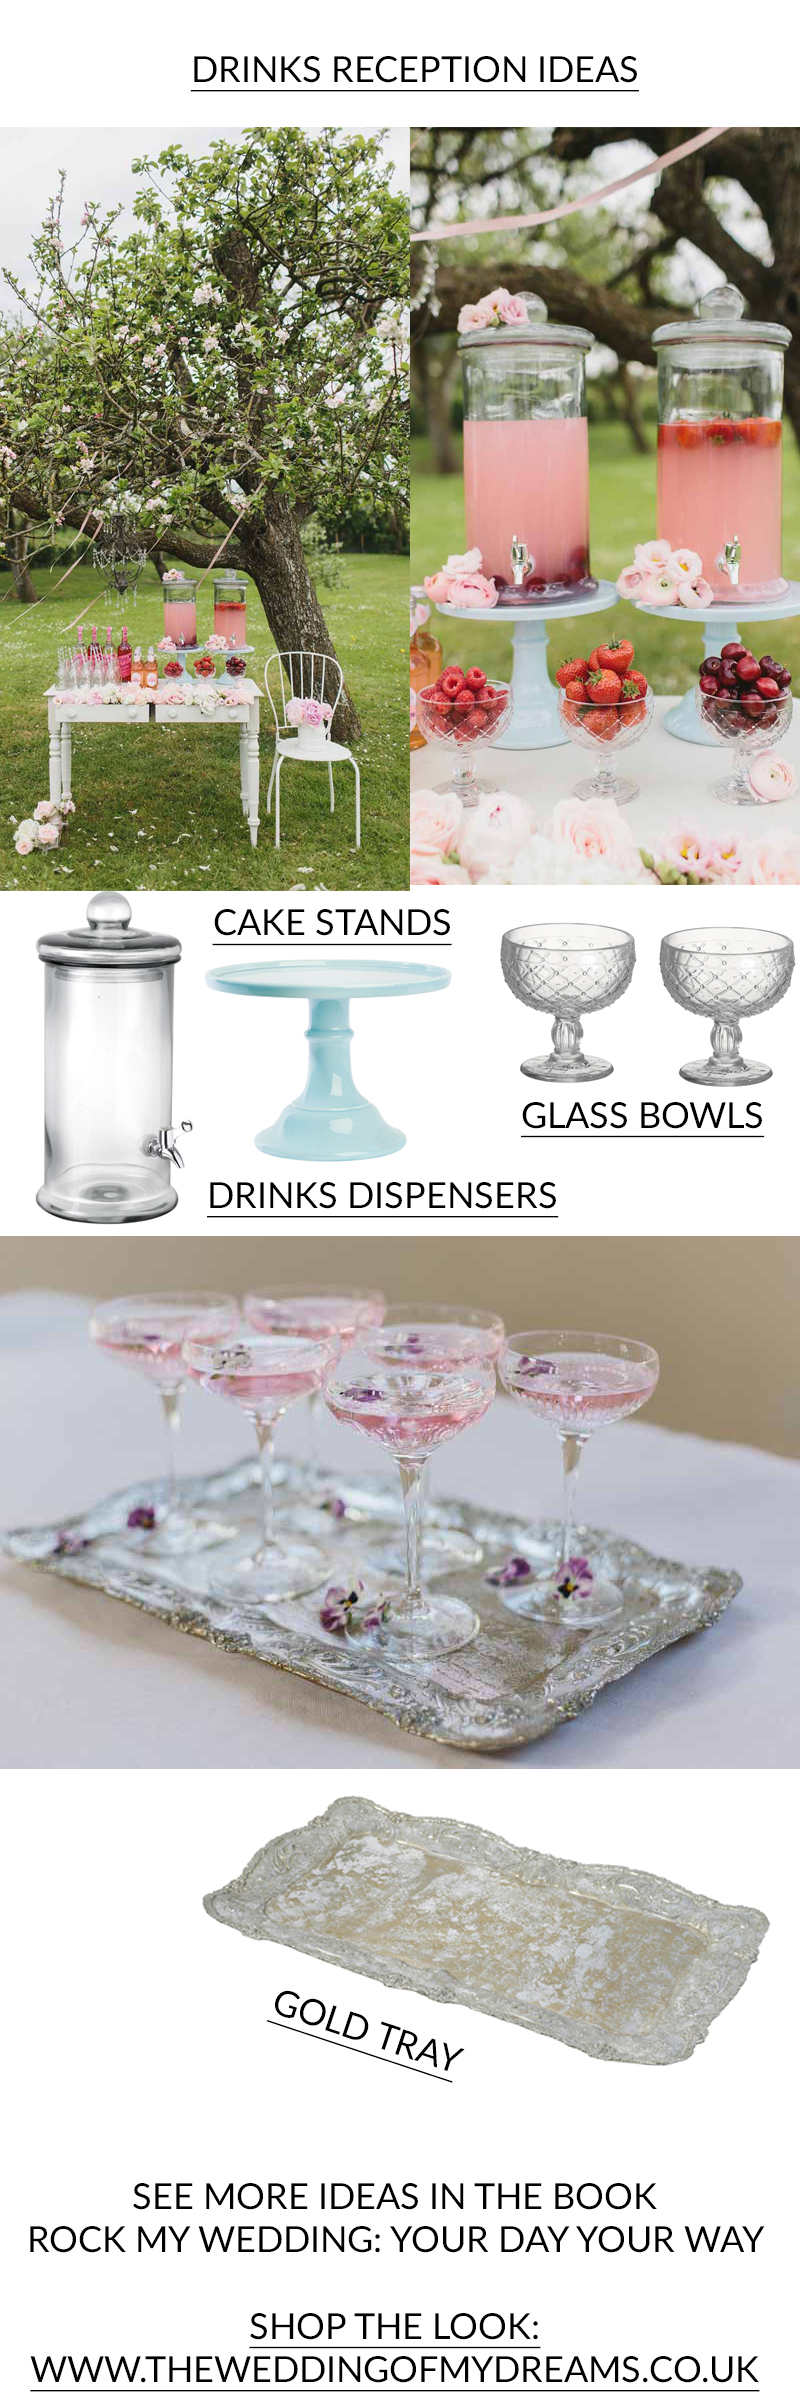 WEDDING DRINKS RECEPTION IDEAS from Rock My Wedding Book